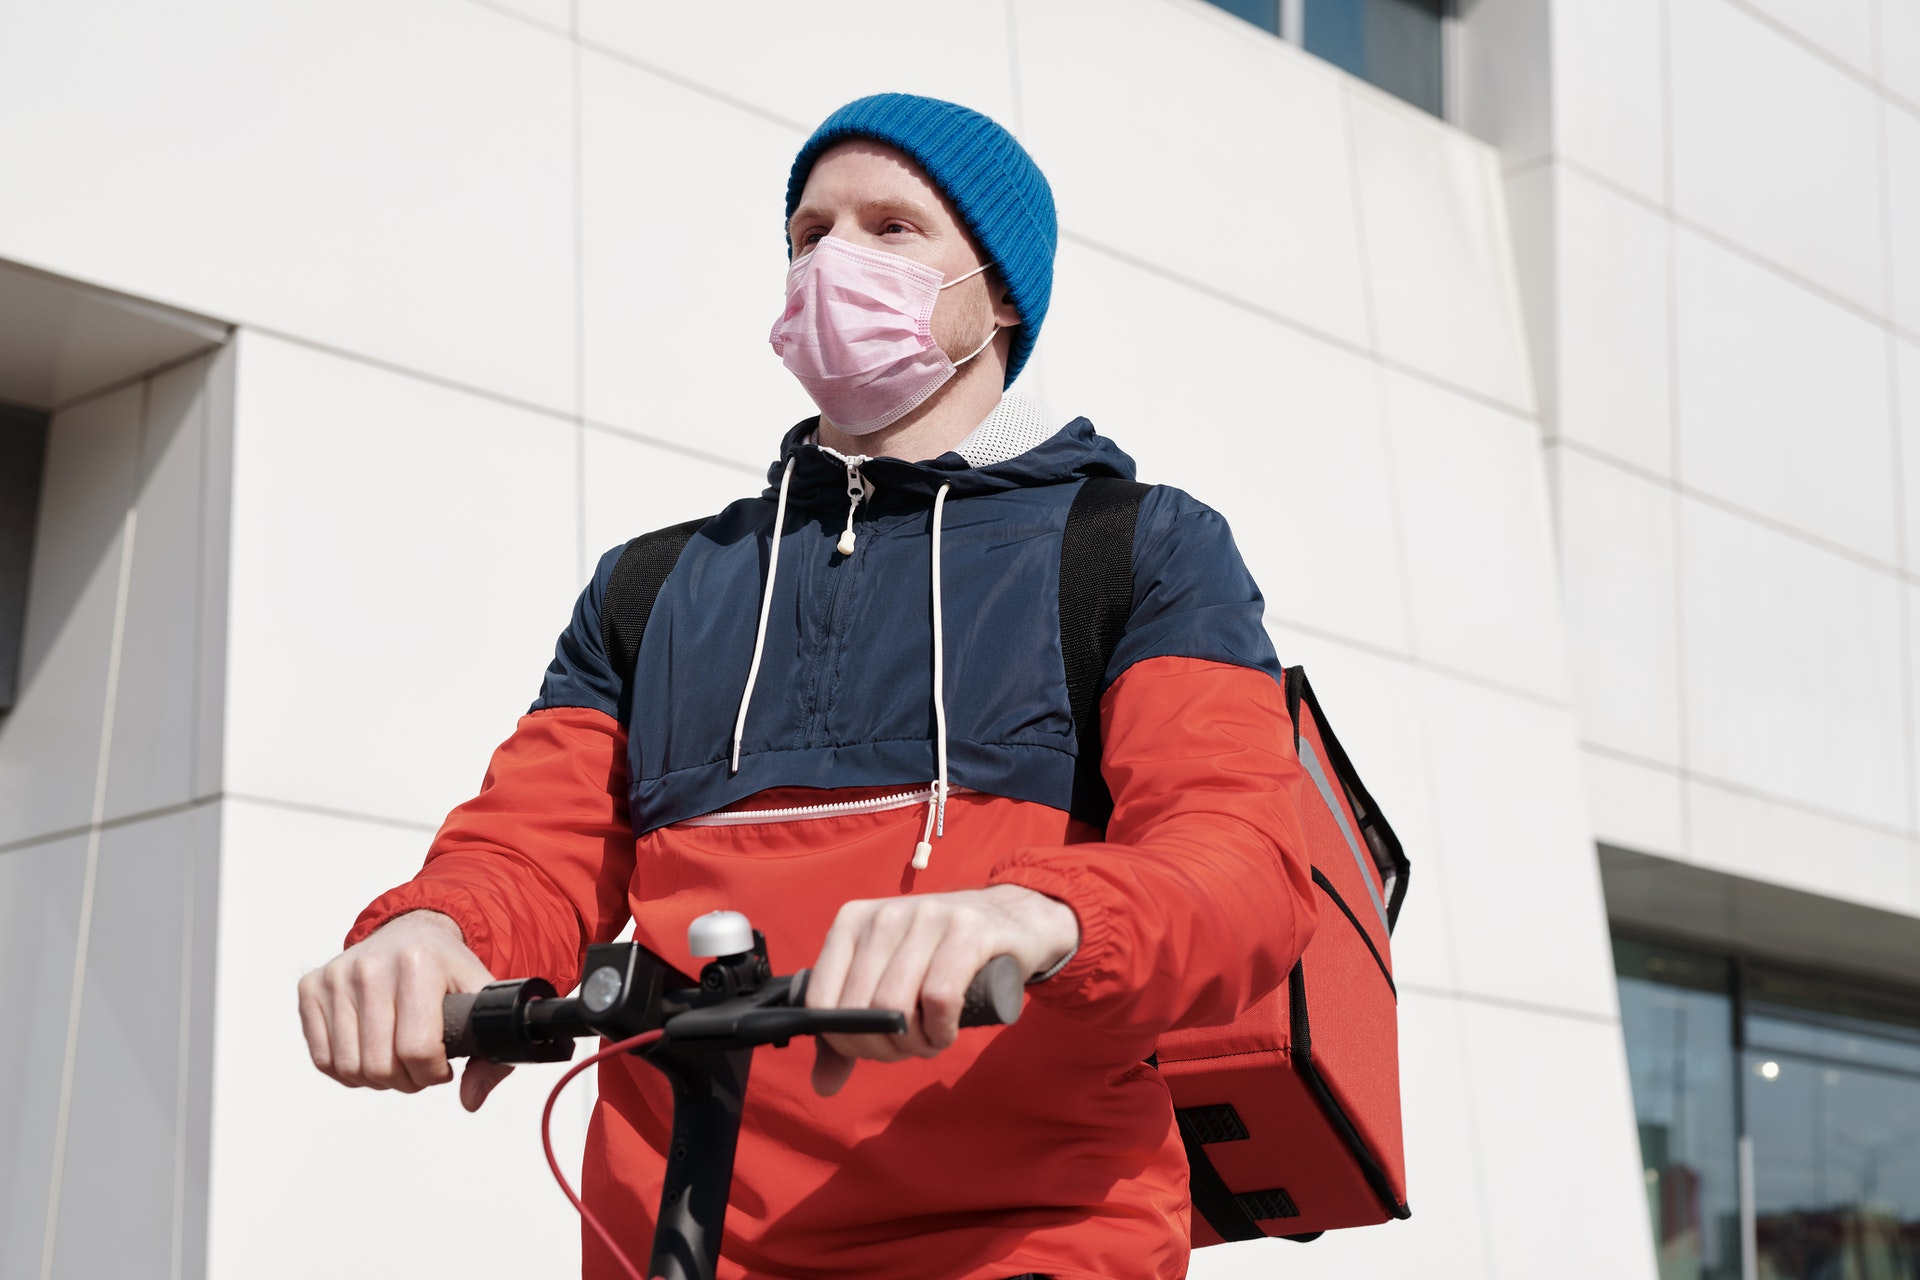 man on bicyle wearing a mask